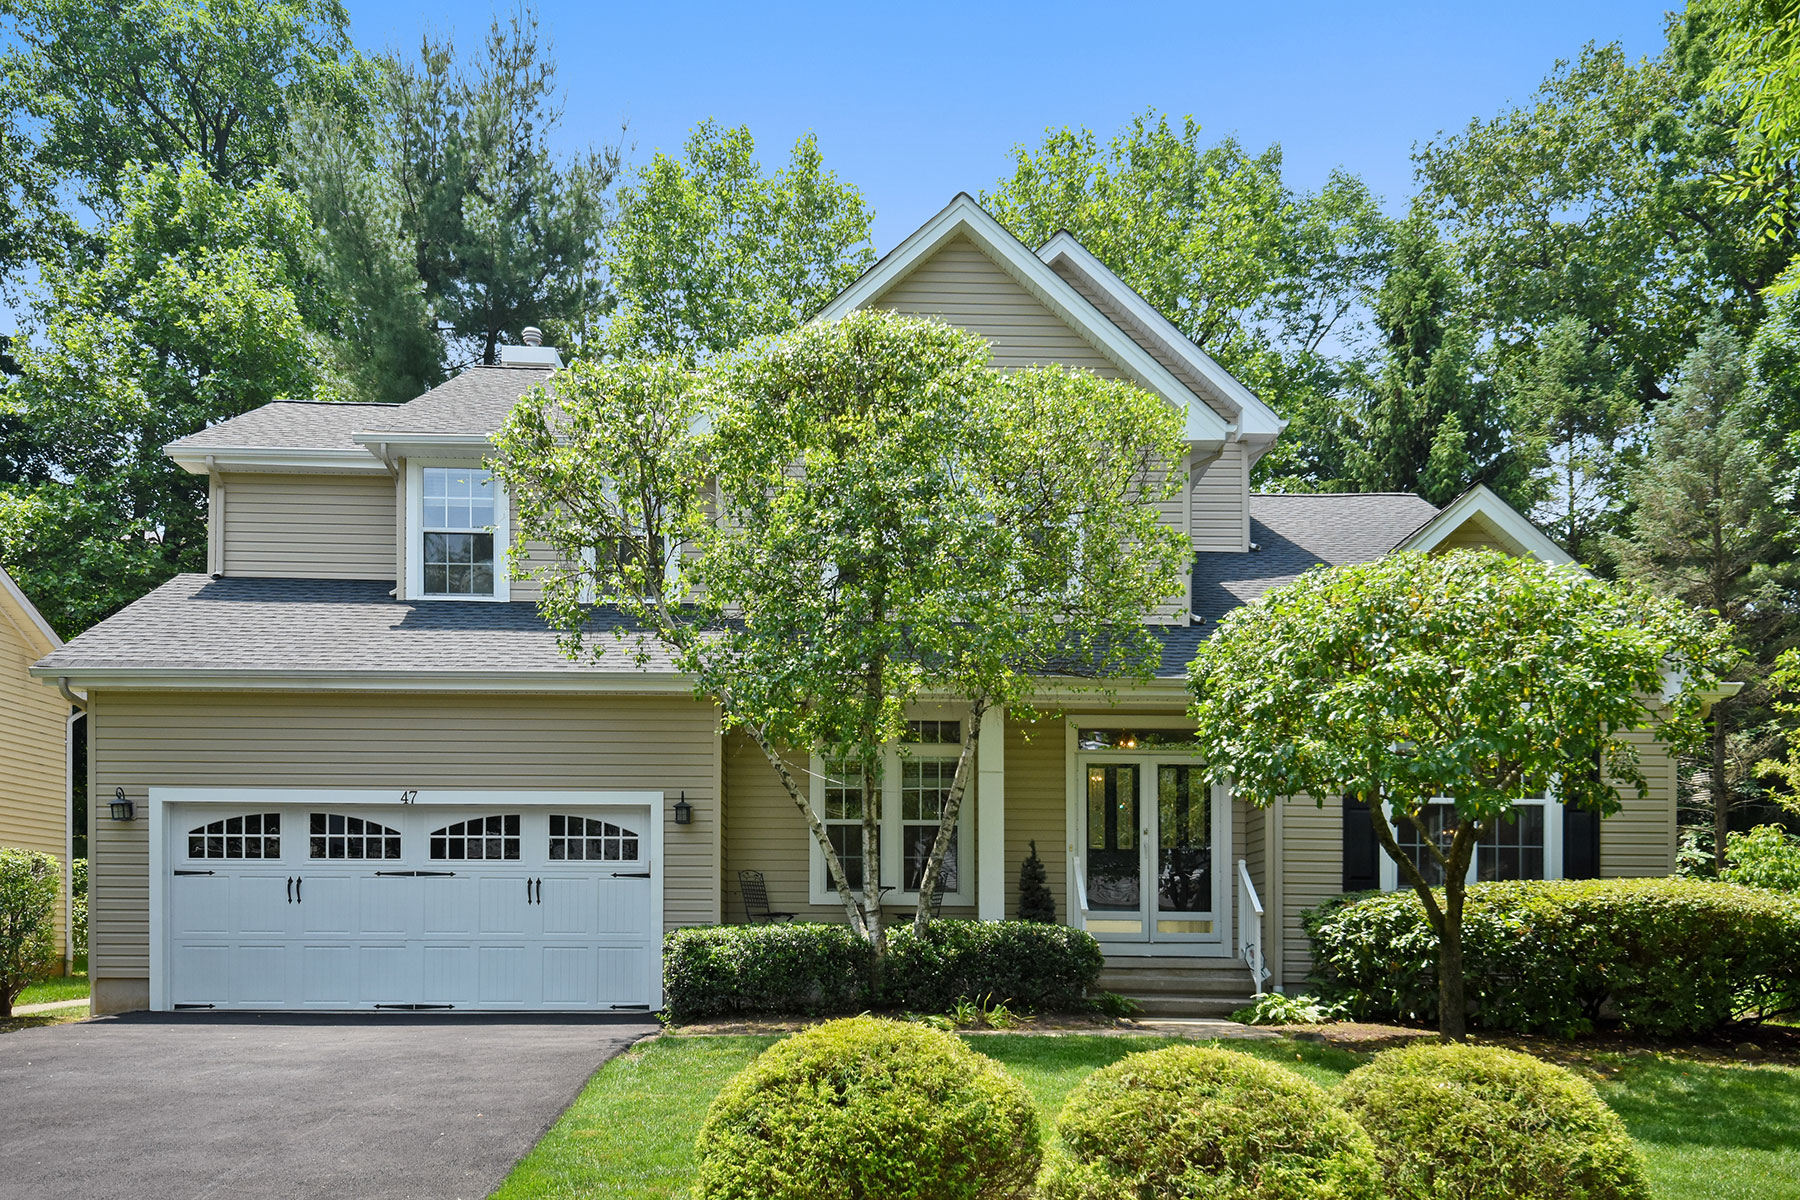 Single Family Homes for Sale at Sunlit Colonial 47 Alder Lane Basking Ridge, New Jersey 07920 United States